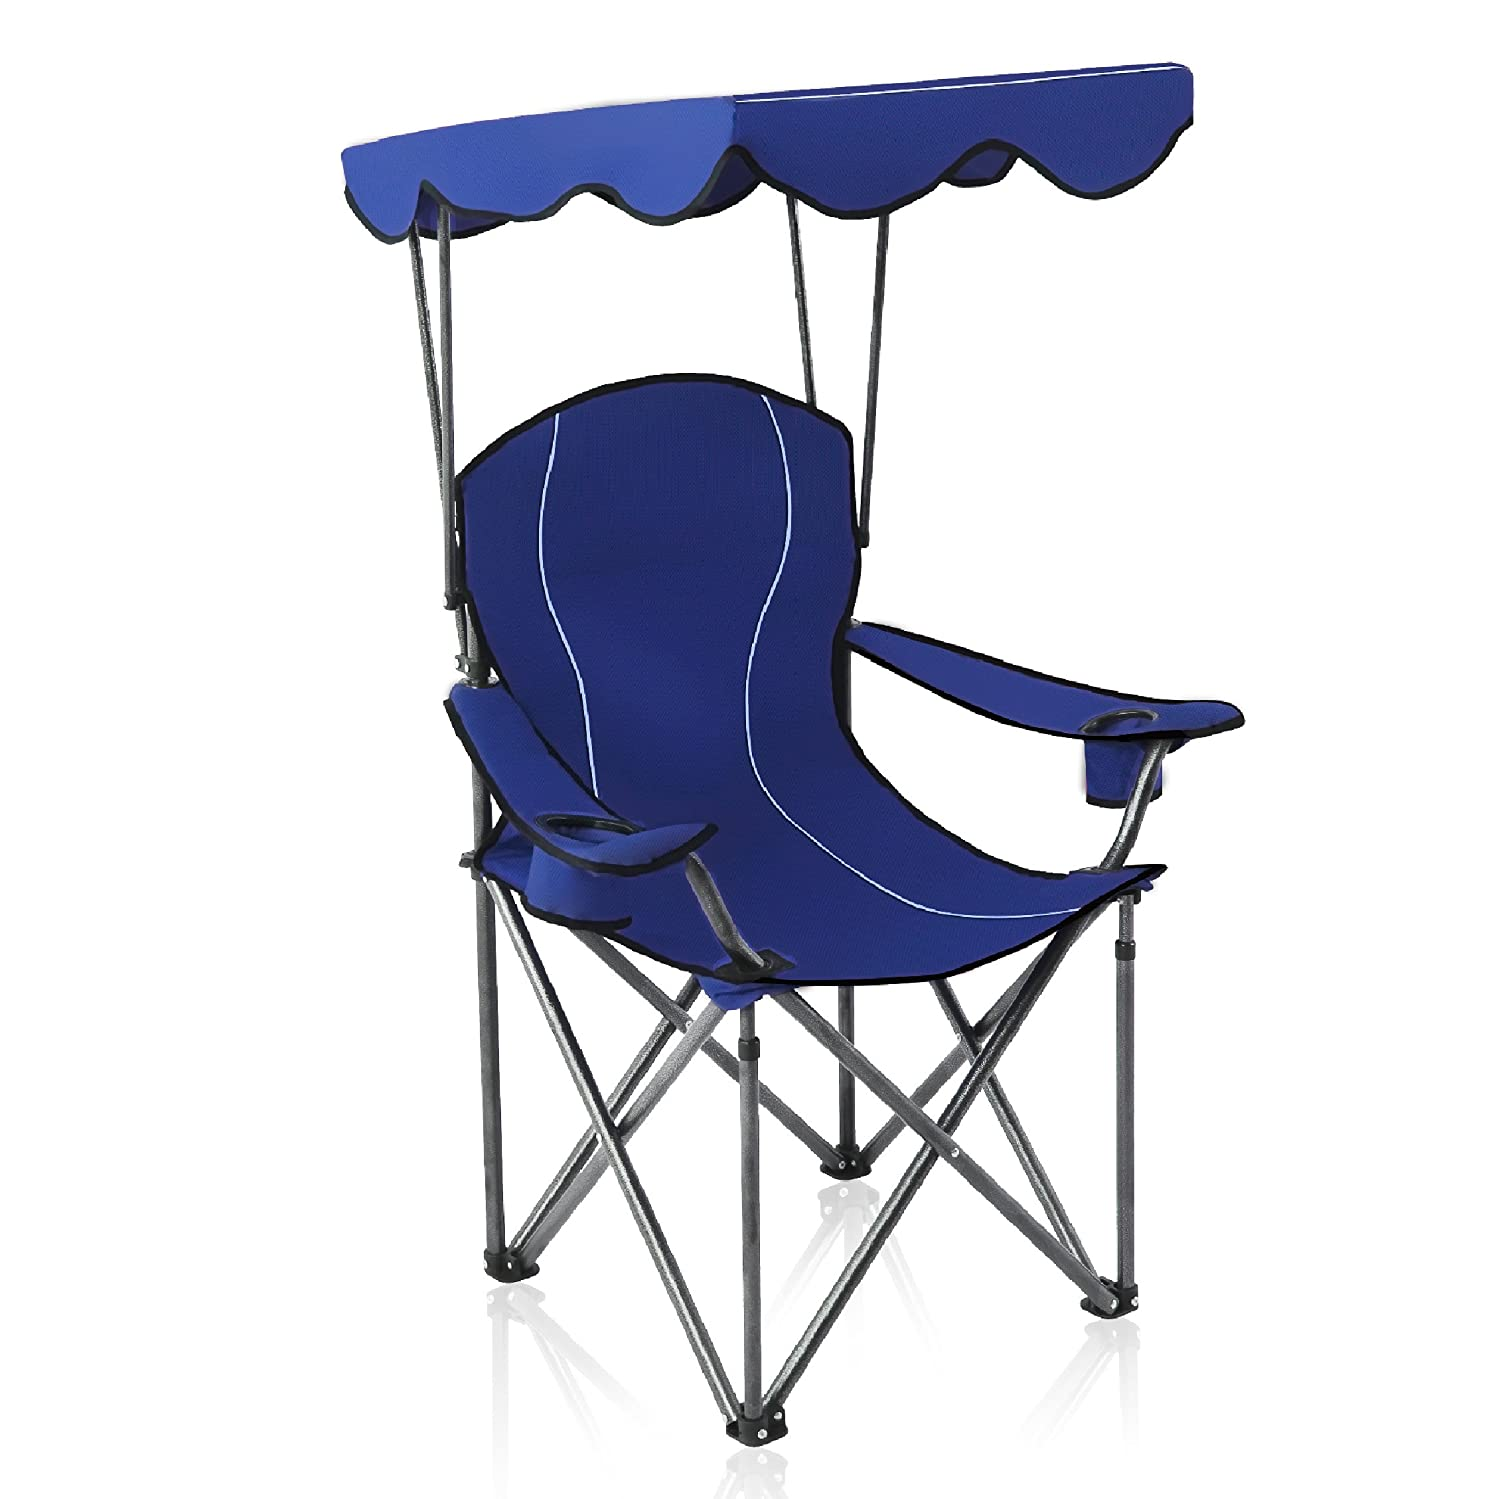 Pleasing Alpha Camp Camp Chairs With Shade Canopy Chair Folding Camping Recliner Support 350 Lbs Squirreltailoven Fun Painted Chair Ideas Images Squirreltailovenorg